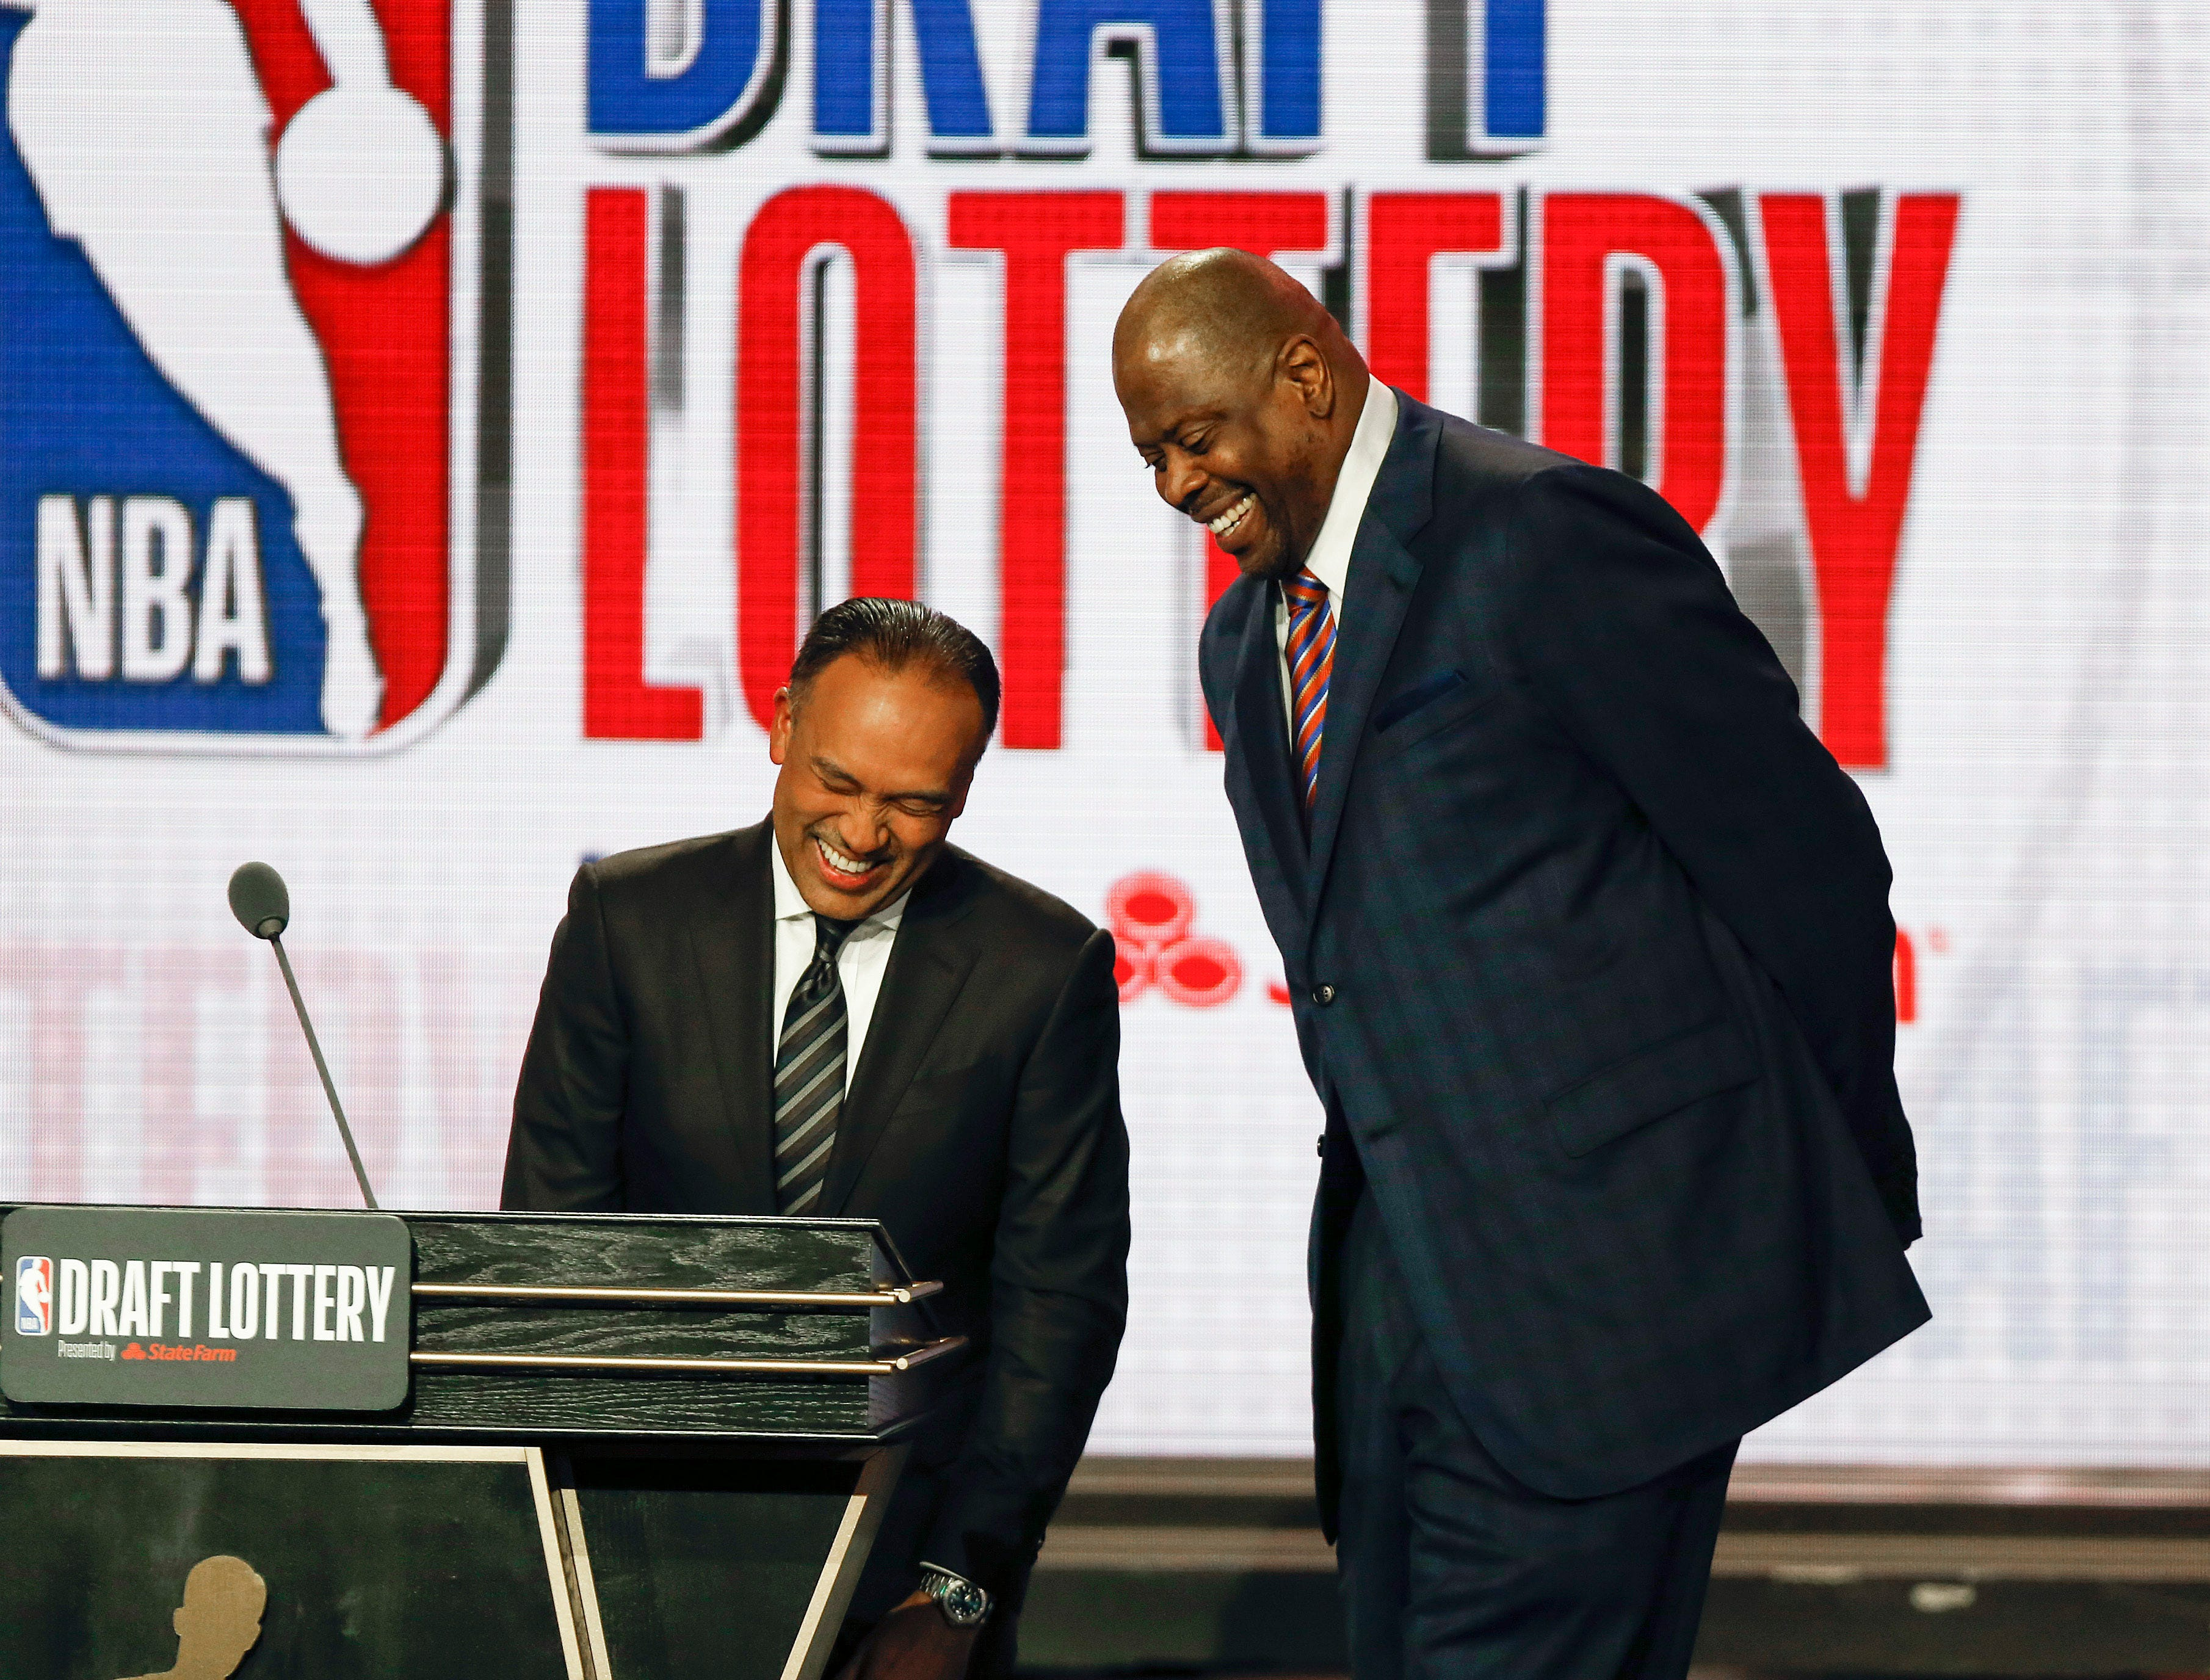 NBA Deputy Commissioner Mark Tatum, left, laughs with Patrick Ewing of the New York Knicks during the NBA basketball draft lottery Tuesday, May 14, 2019, in Chicago. (AP Photo/Nuccio DiNuzzo)